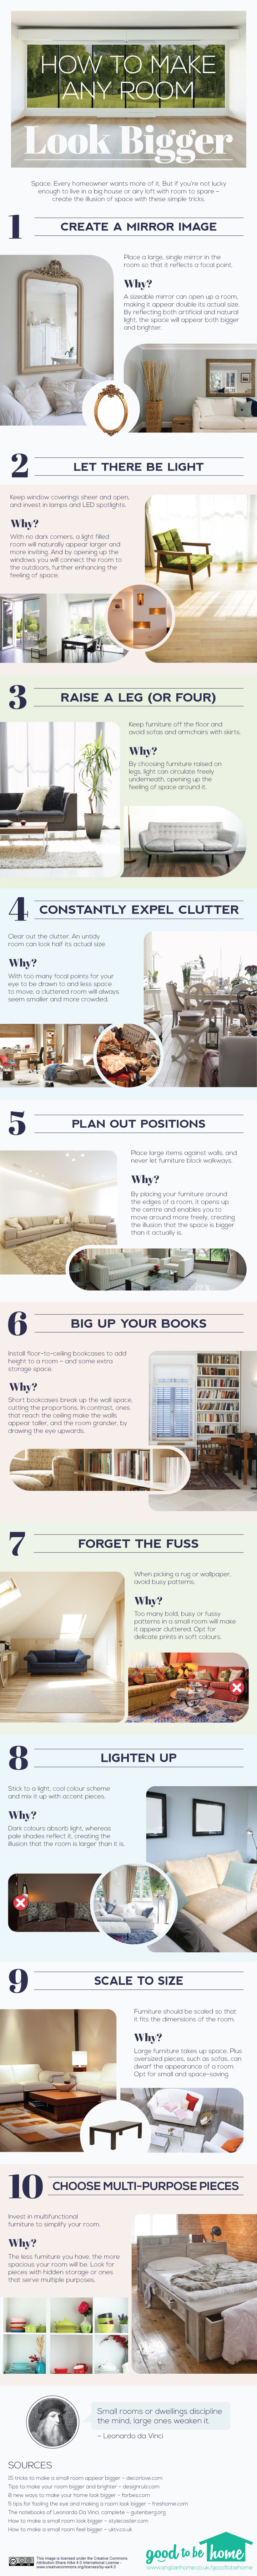 how-to-make-any-room-look-bigger